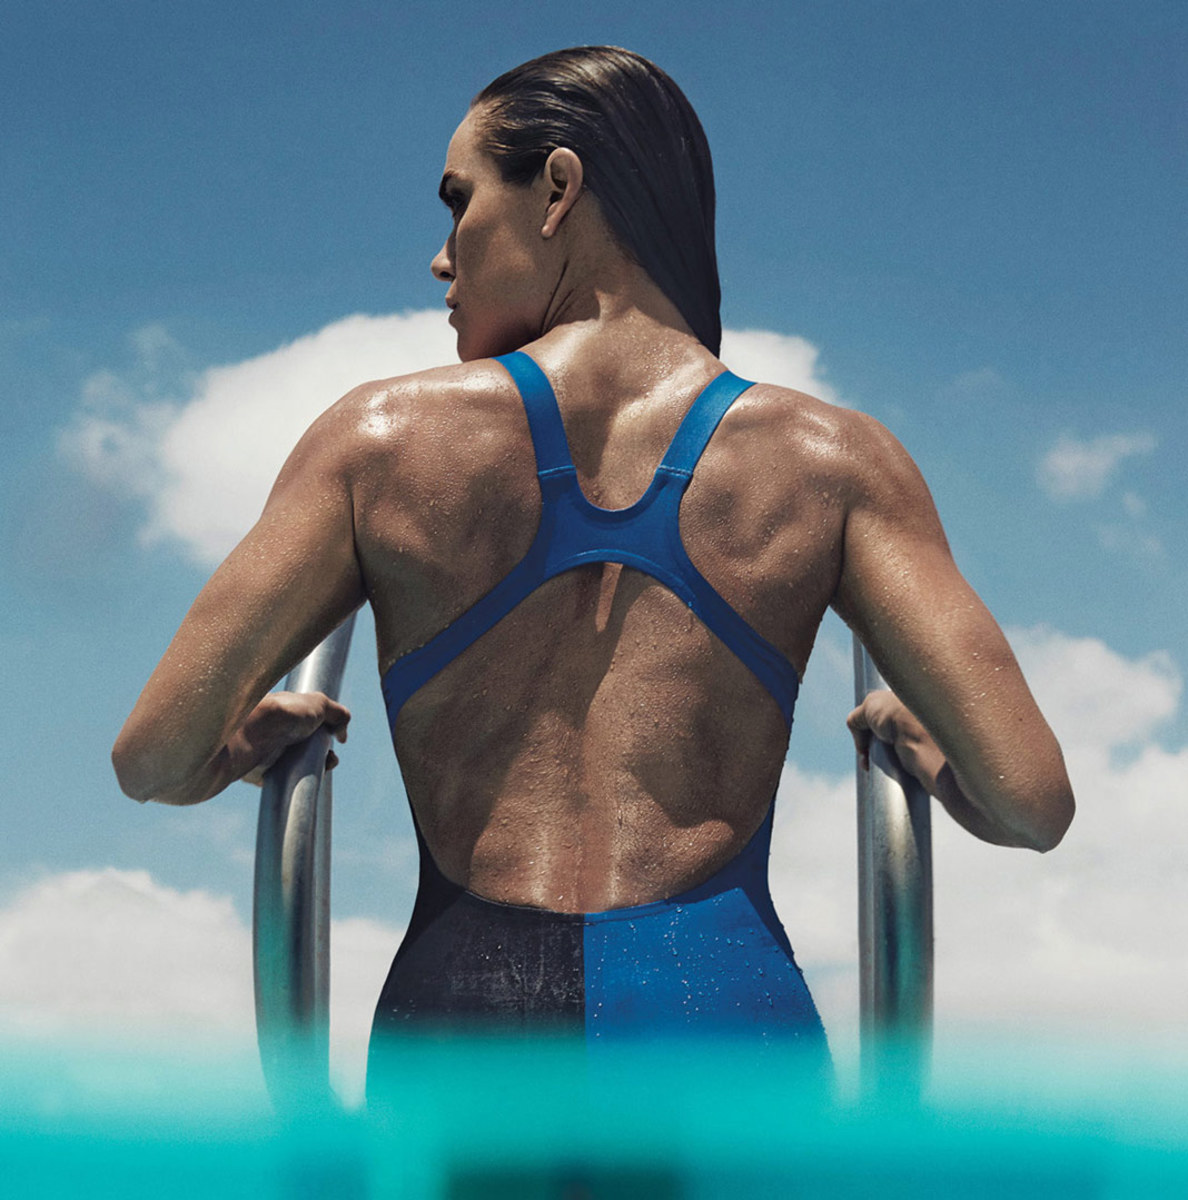 Swimmer Natalie Coughlin in 'Self.' Photo: Robbie Fimmano/Self